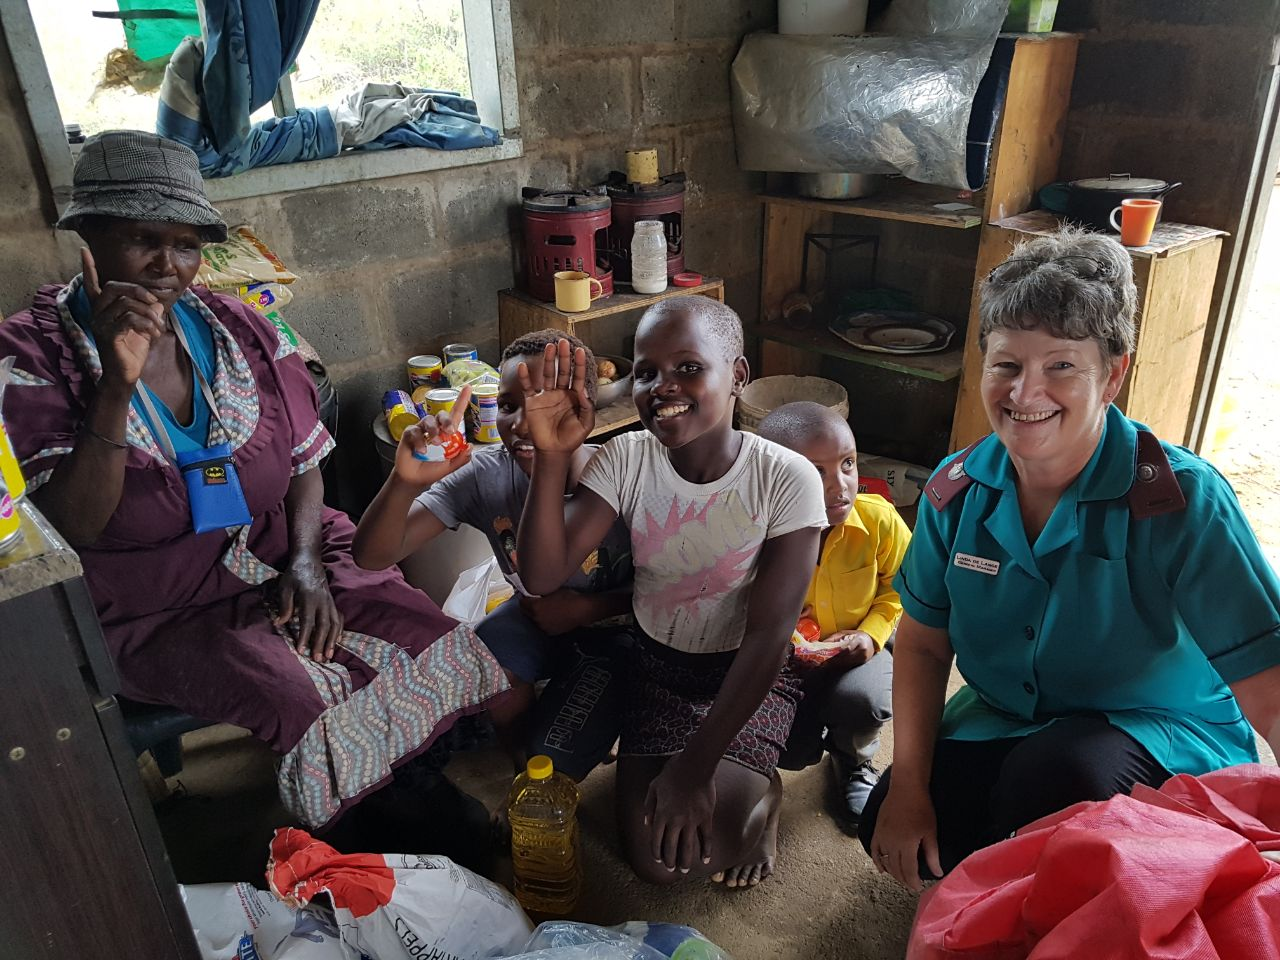 Linda visiting the Sipho family